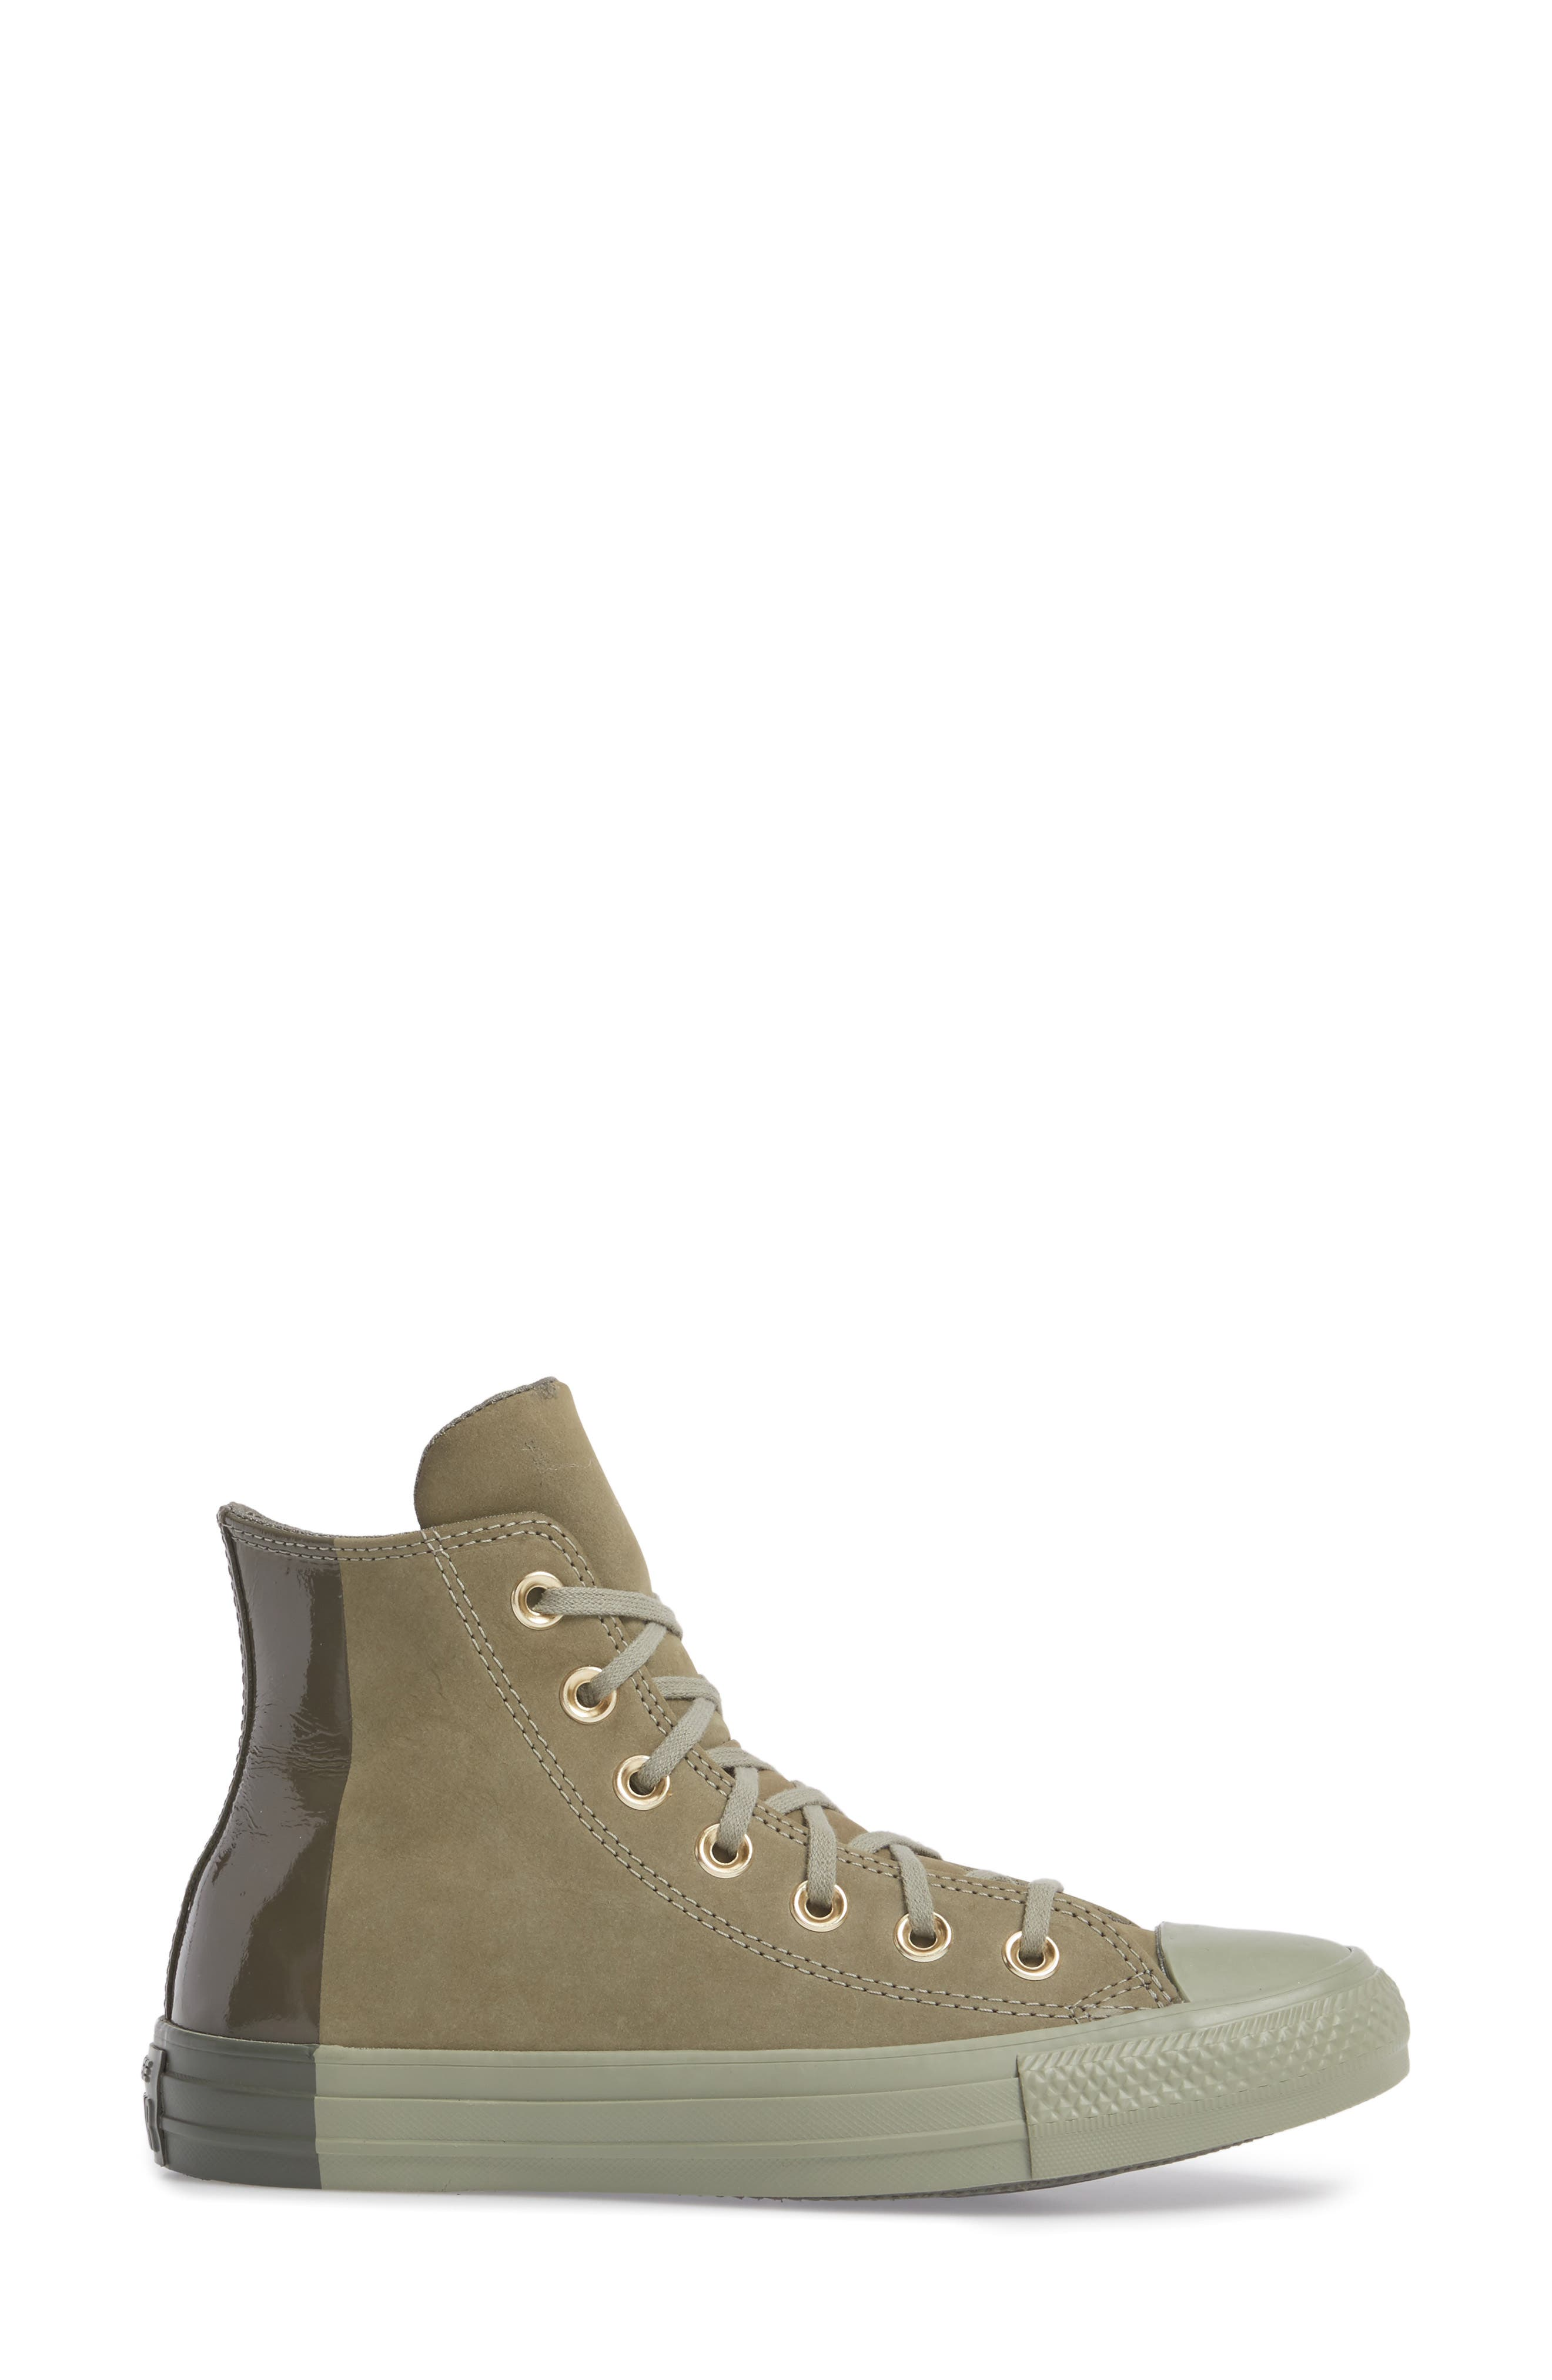 Chuck Taylor<sup>®</sup> All Star<sup>®</sup> High Top Sneaker,                             Alternate thumbnail 3, color,                             Dark Stucco